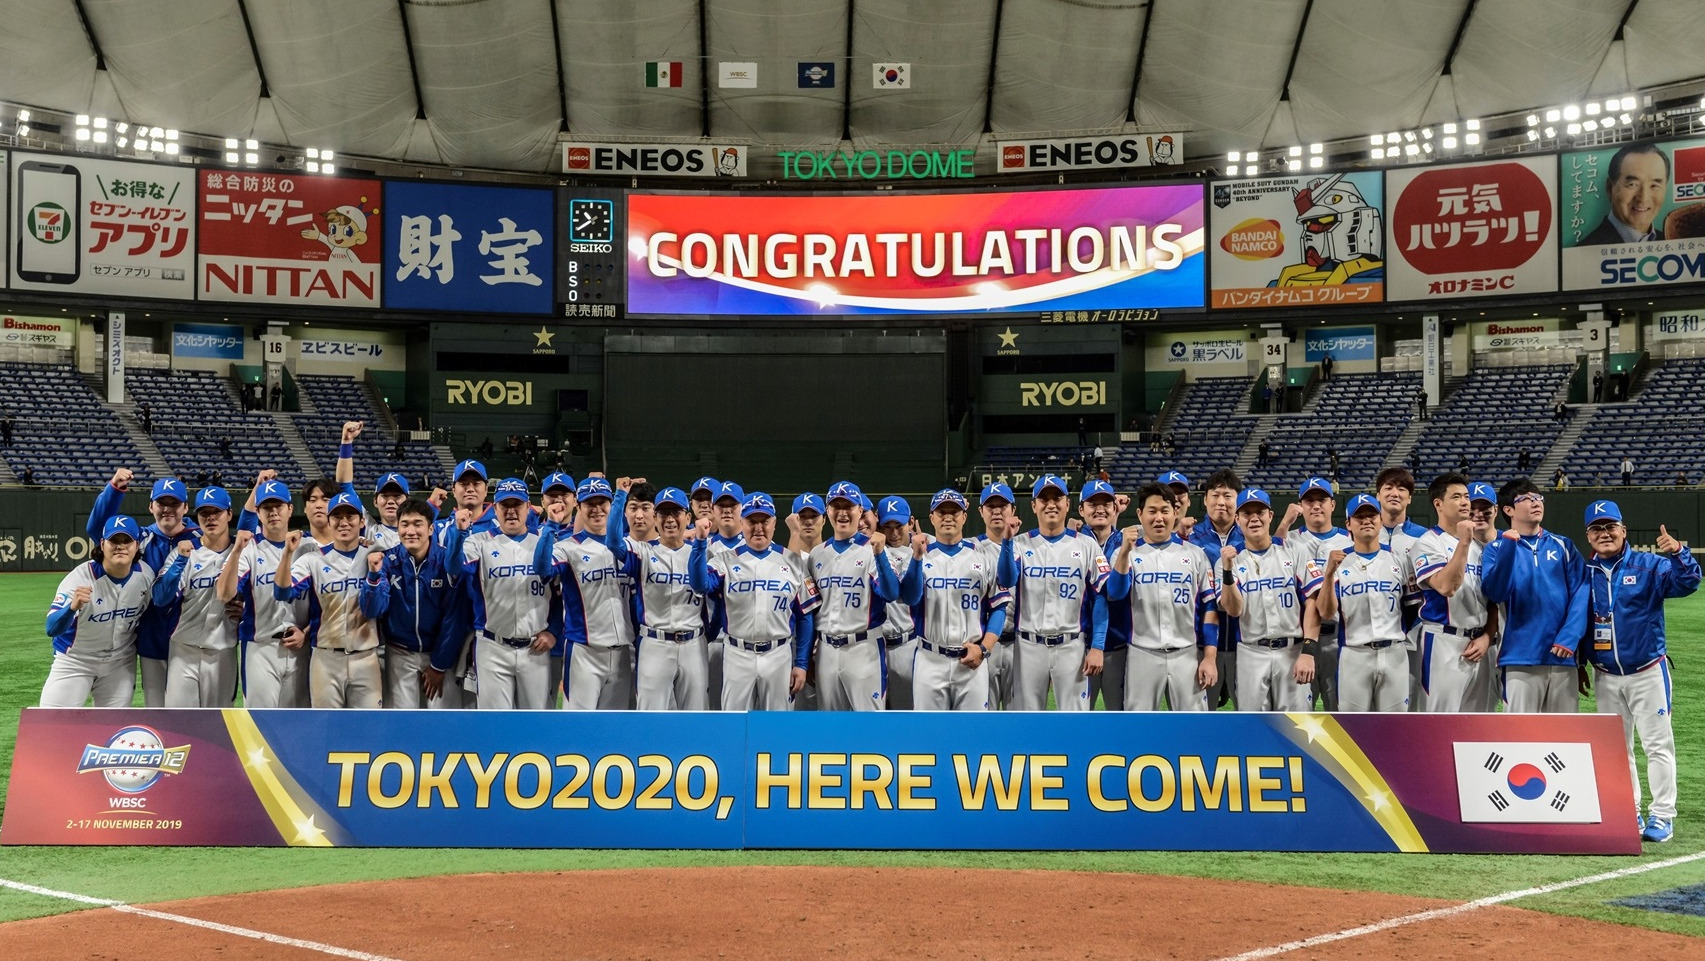 Korea earned a spot in the 2020 Olympic Games